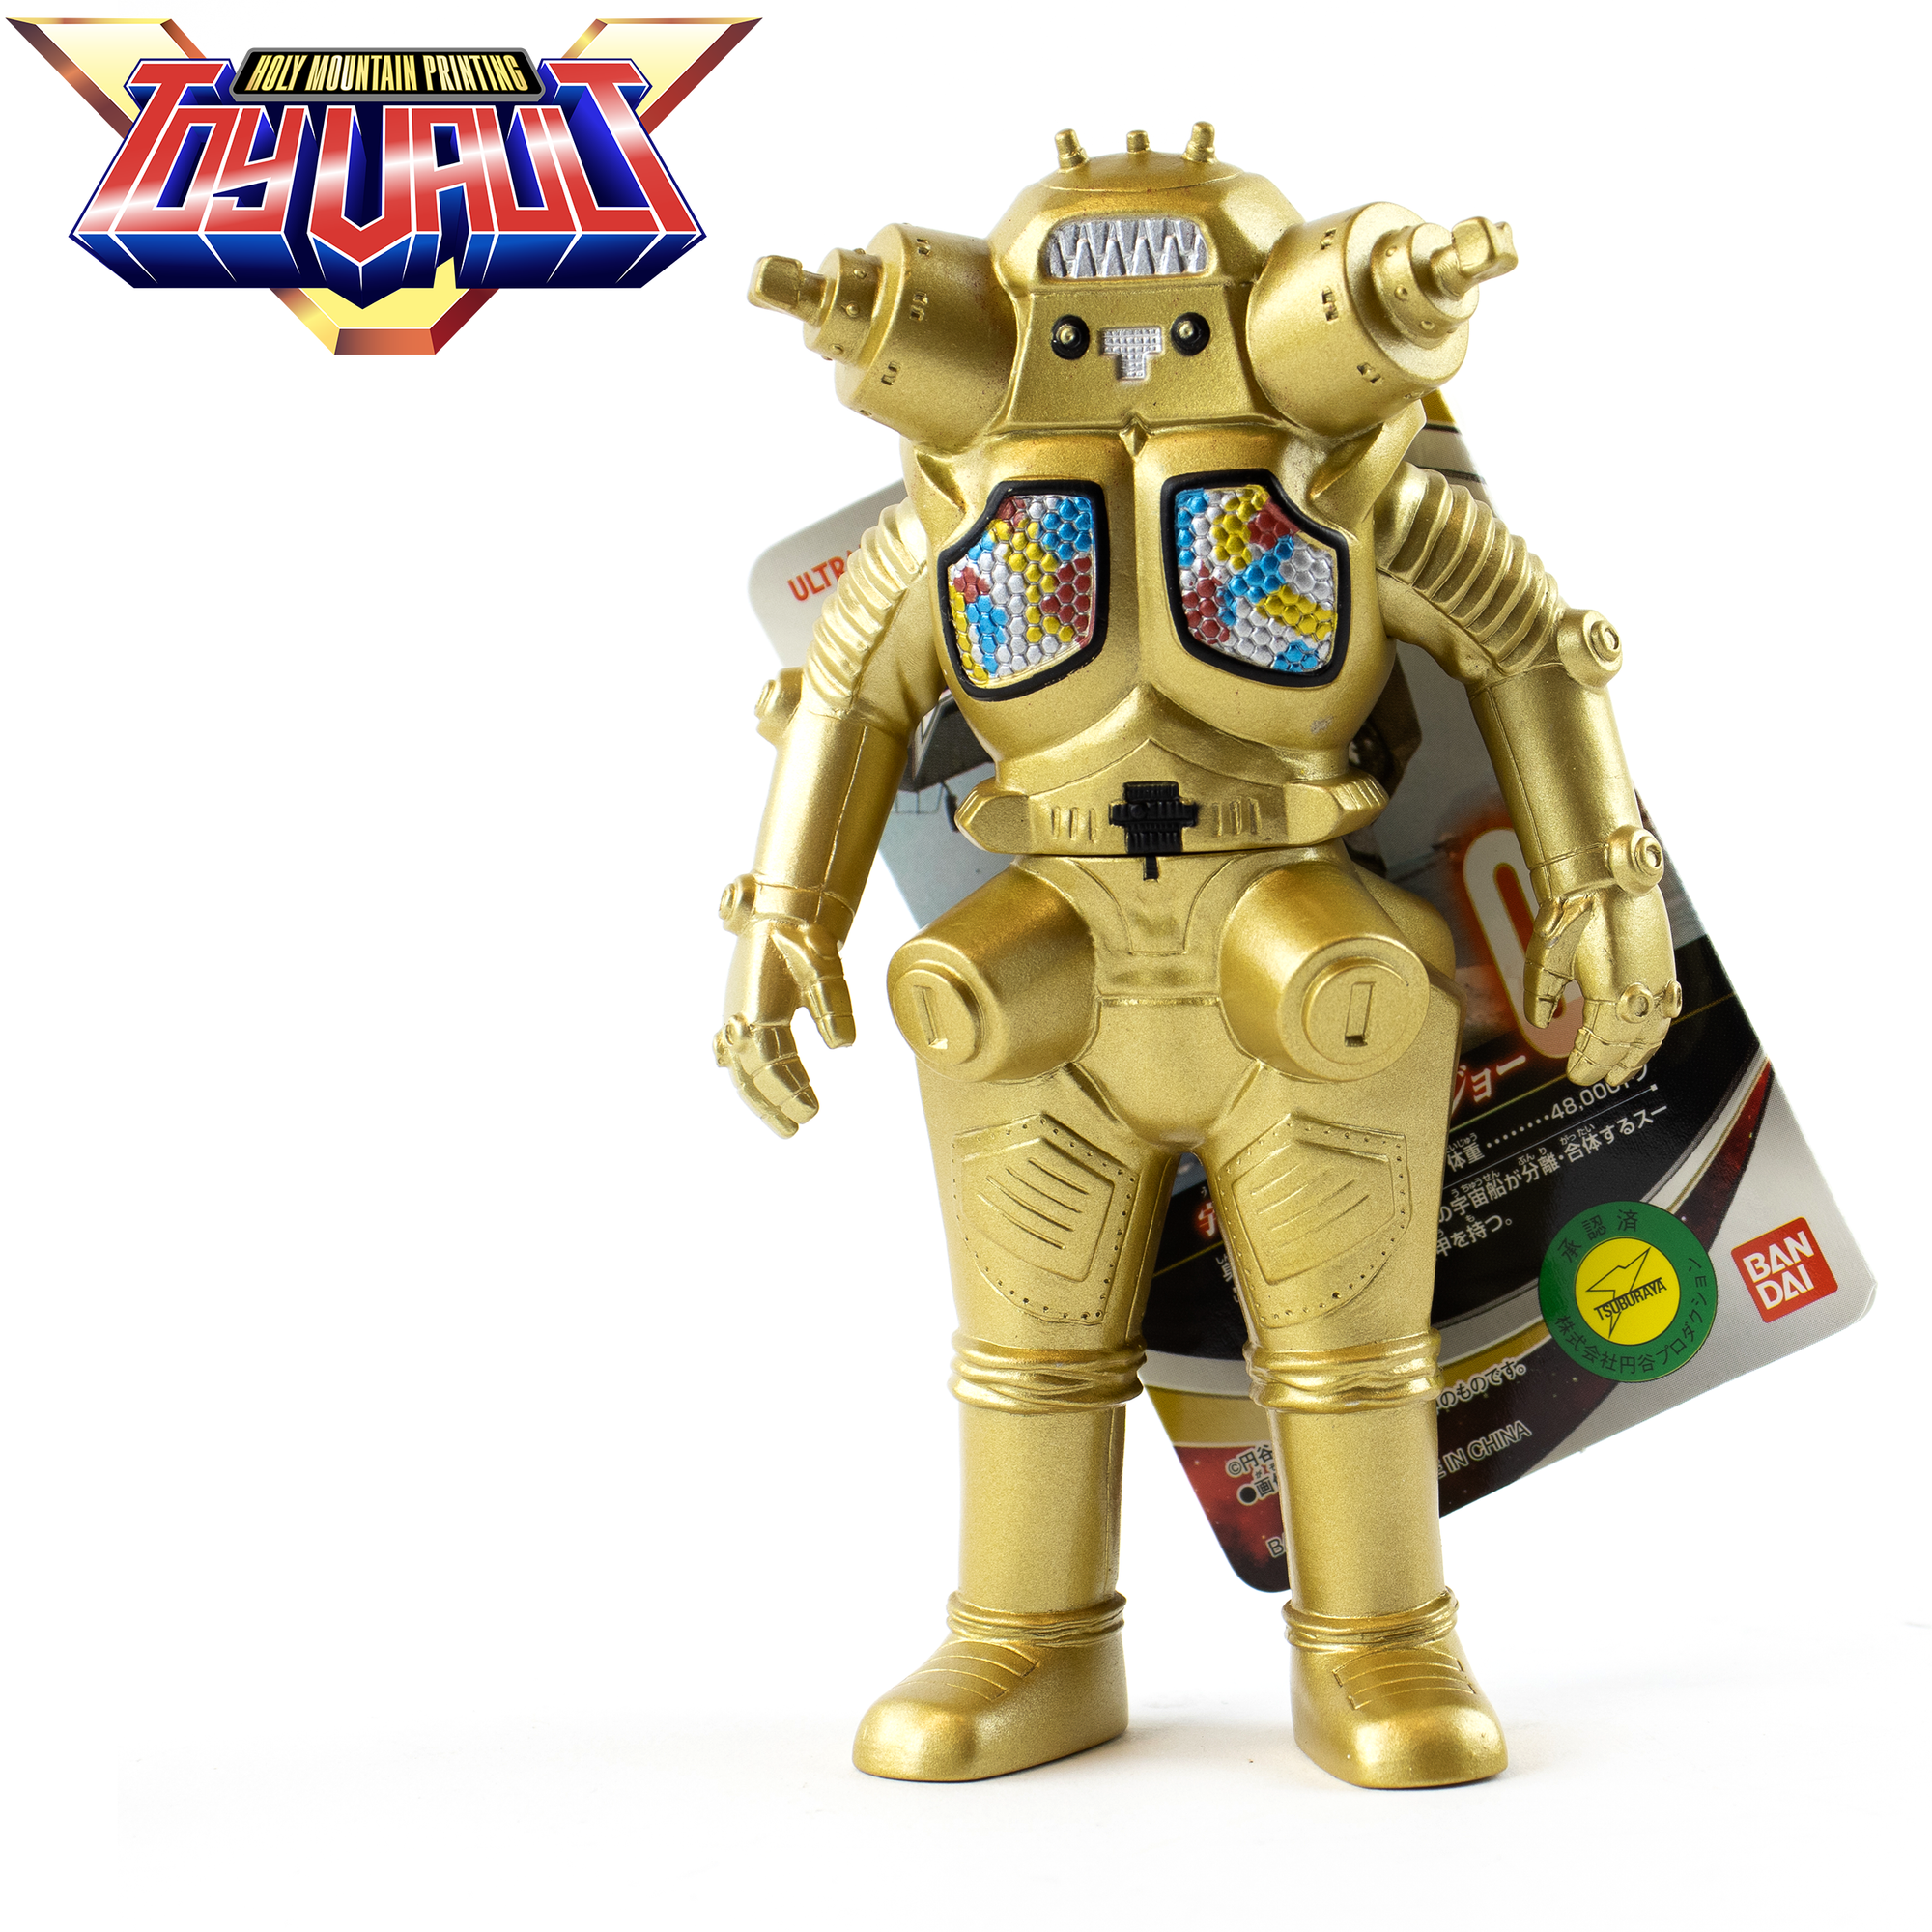 BANDAI - ULTRA MONSTER SERIES #07: KING JOE